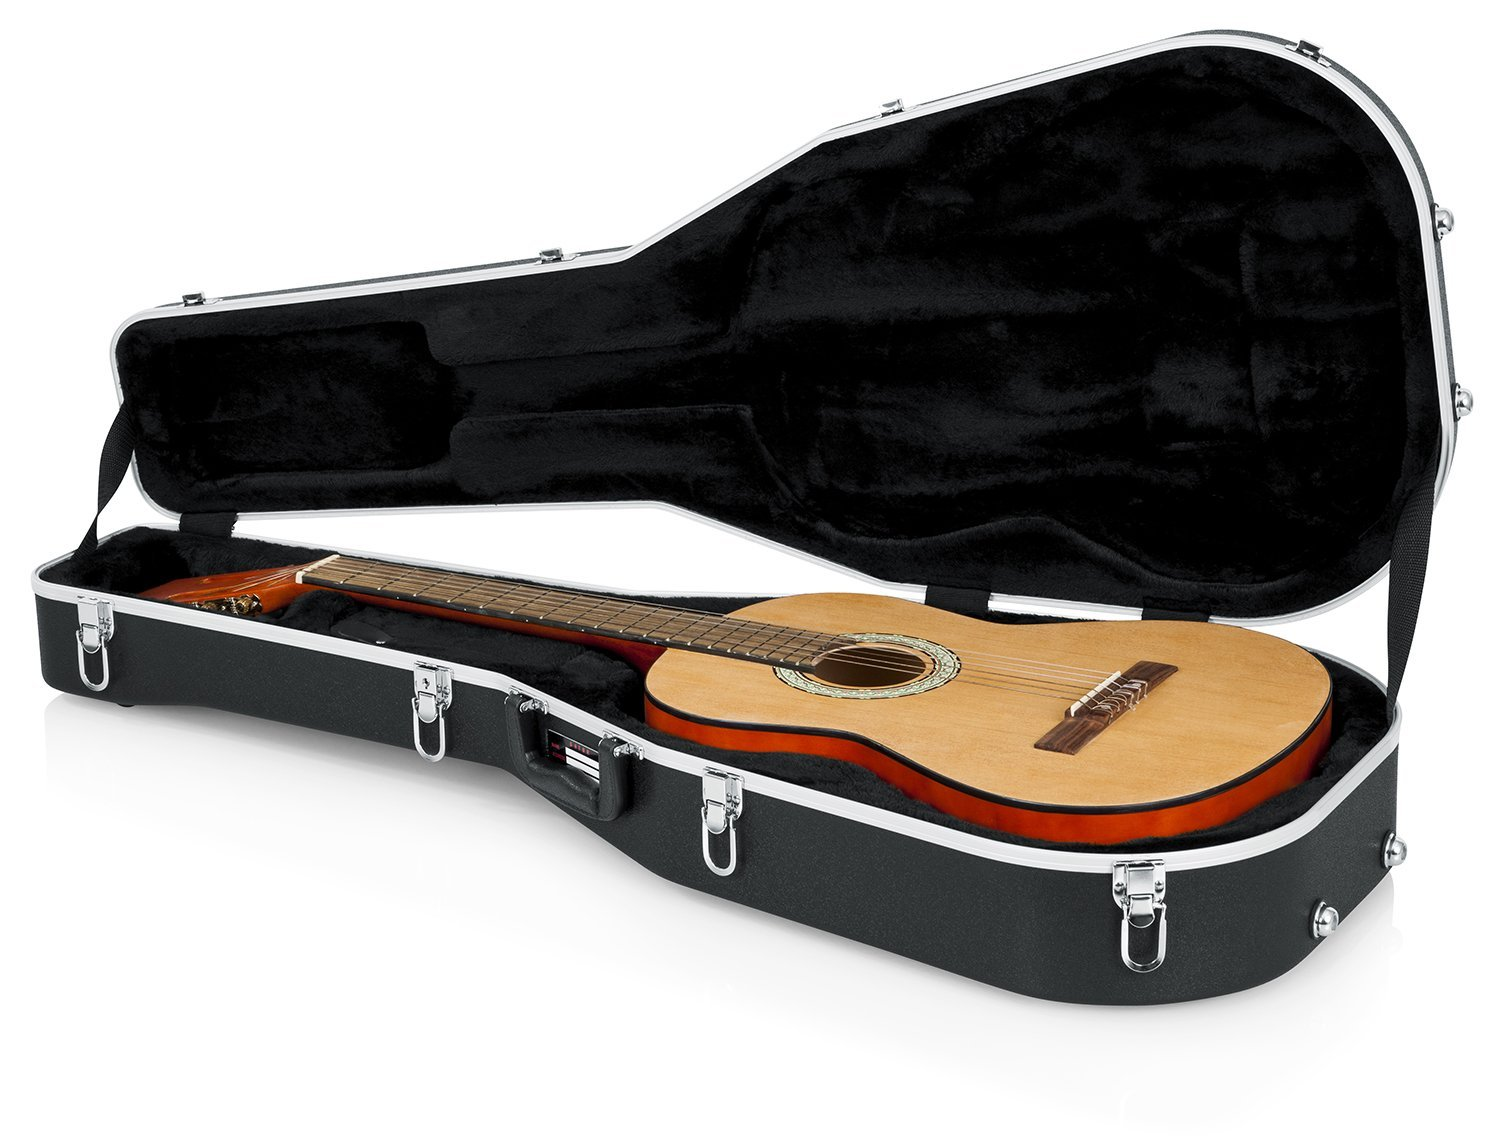 Gator Cases Deluxe ABS Classical Guitar Case (Plastic) by Gator (Image #2)